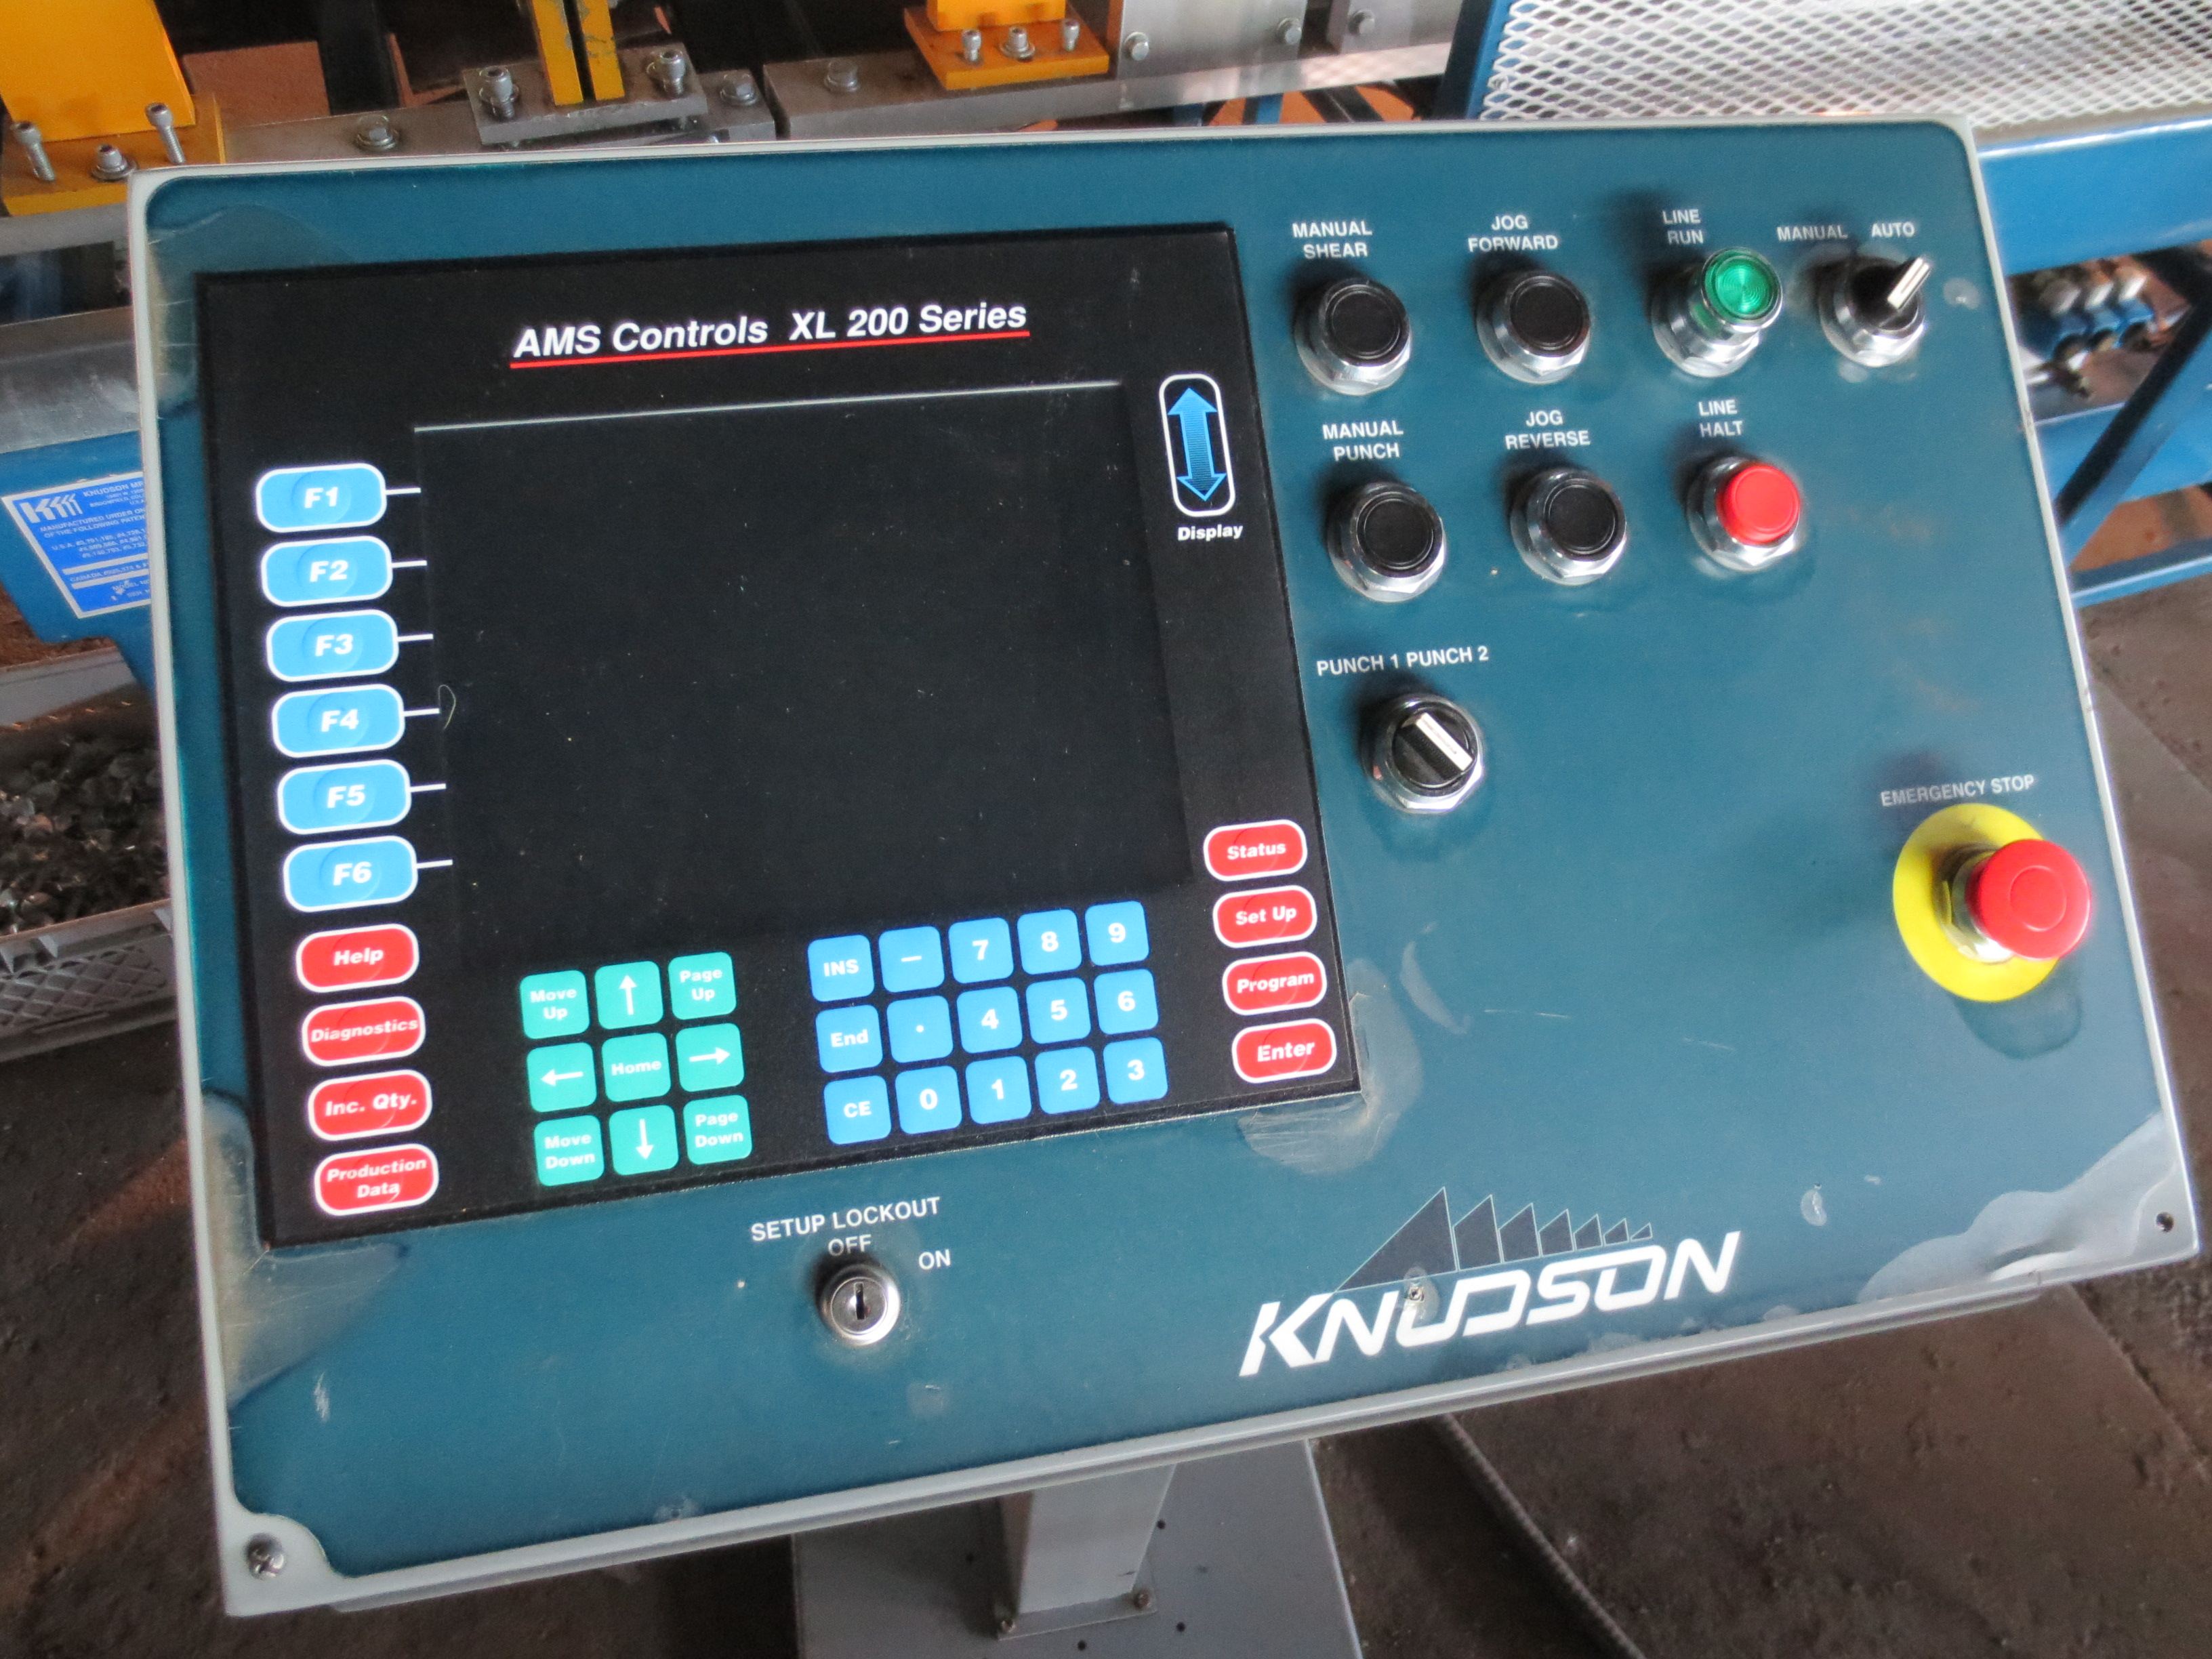 Lot 1 - KNUDSON 246B roll former/FrameMaker with KNUDSON AMS XL 200 control, uncoiler and cut-off with 11